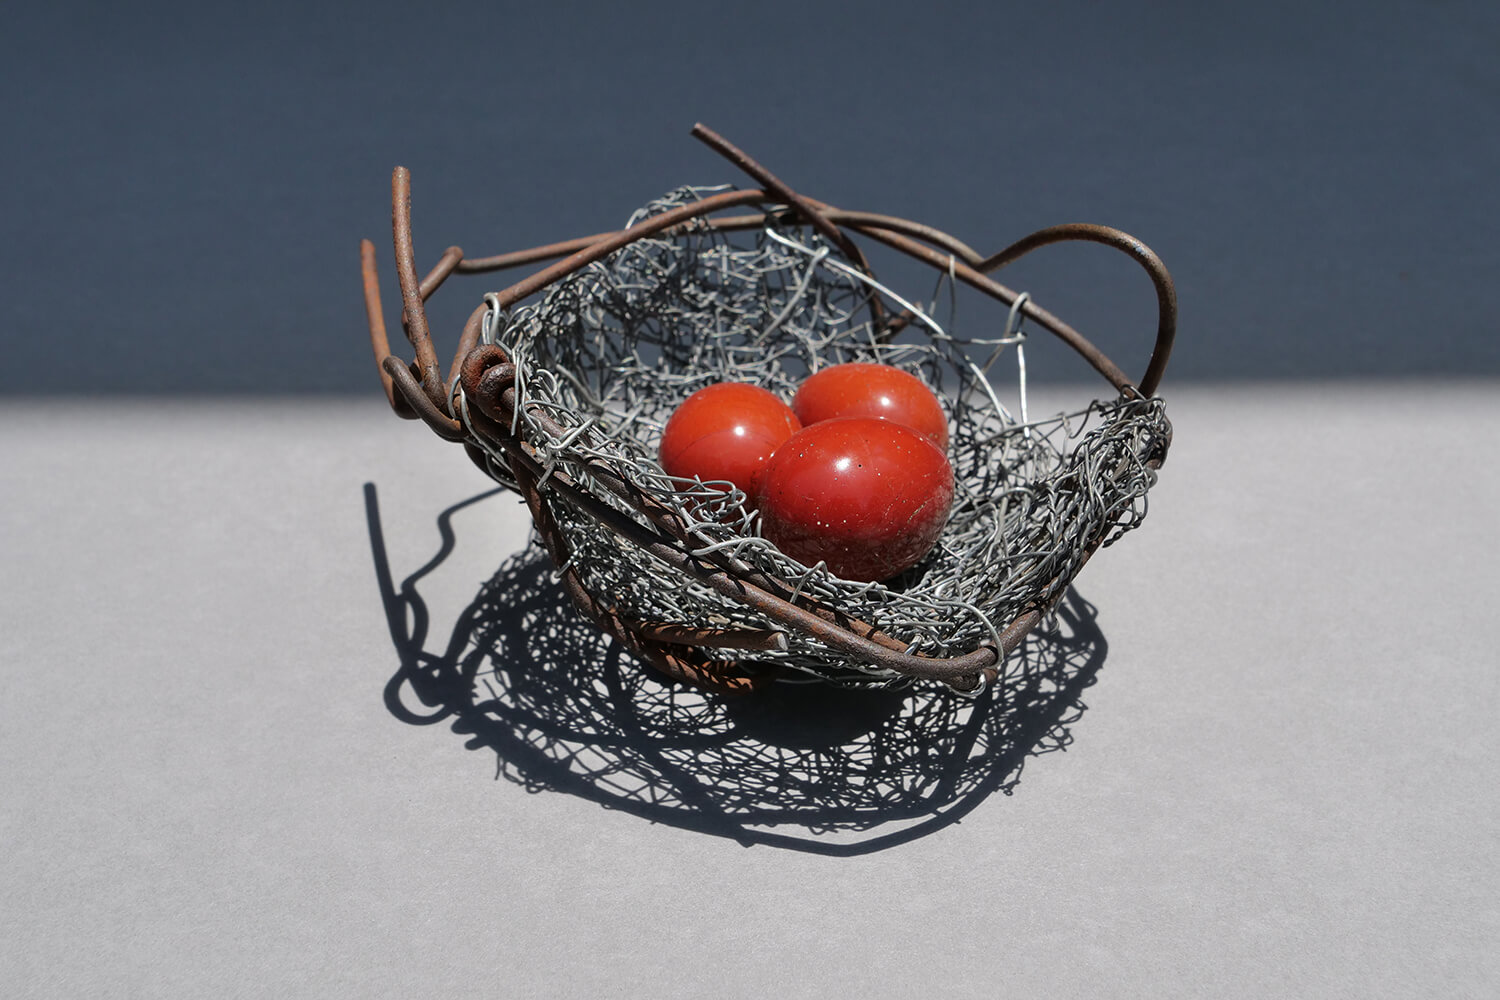 Nest 6. Handmade wire nest 11.5 cm wide and 5.5 cm high with polished stones 3.5 cm. FREE SHIPPING IN AUSTRALIA